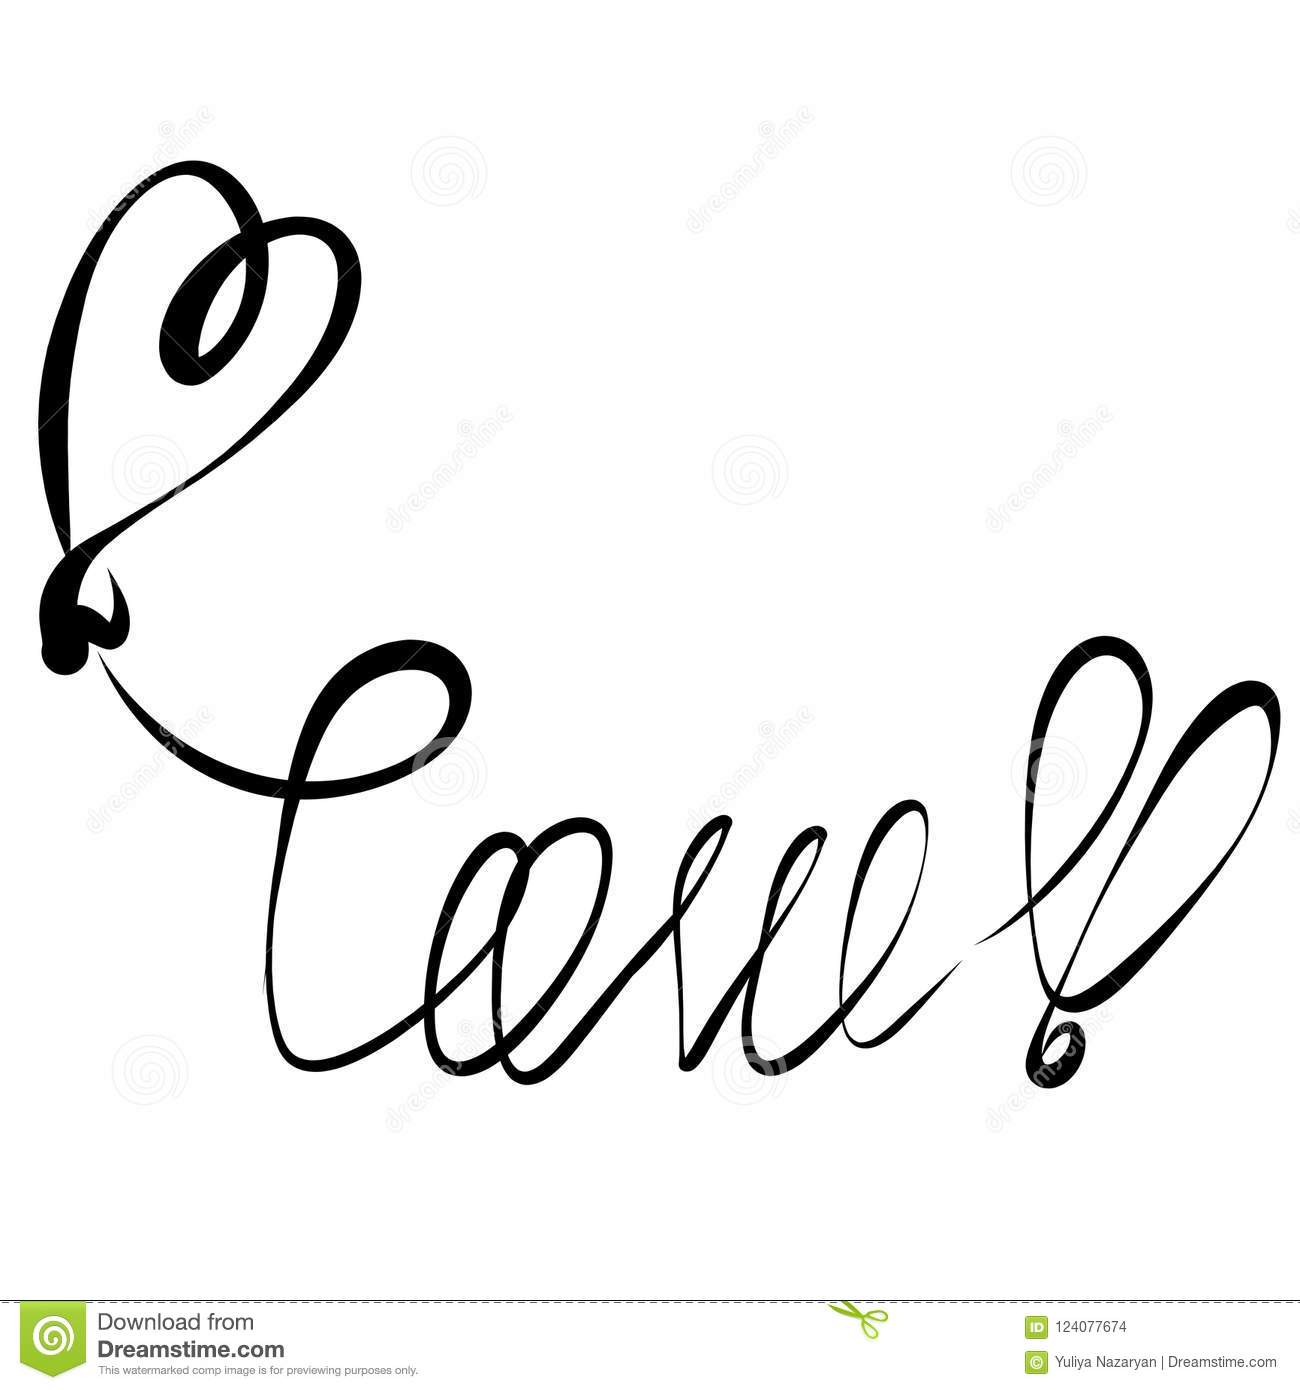 The word LOVE with a balloon and an exclamation mark in the shape of a heart